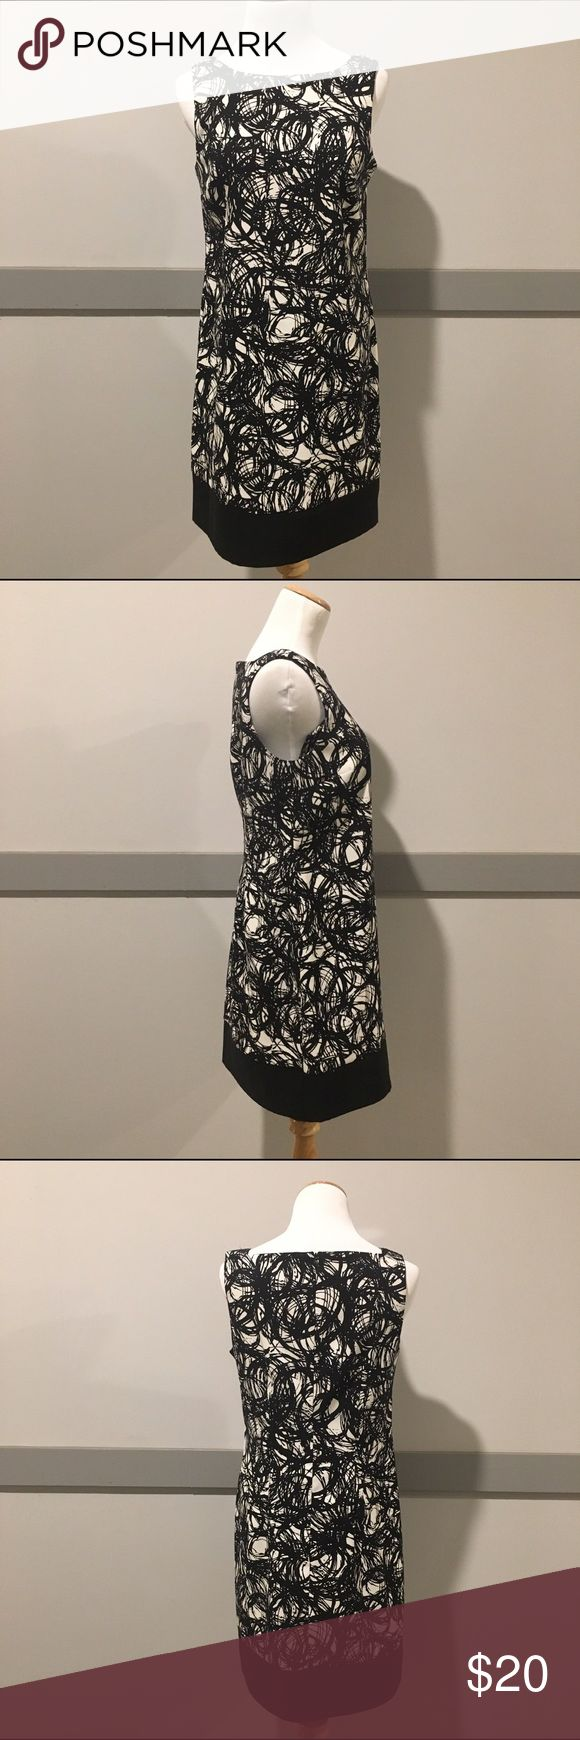 AB Studio Black and White Shift Dress AB Studio Black and White Shift Dress. Perfect, like-new condition. Size 8. Zip up back. 97% polyester and 3% spandex. Machine washable. AB Studio Dresses Midi